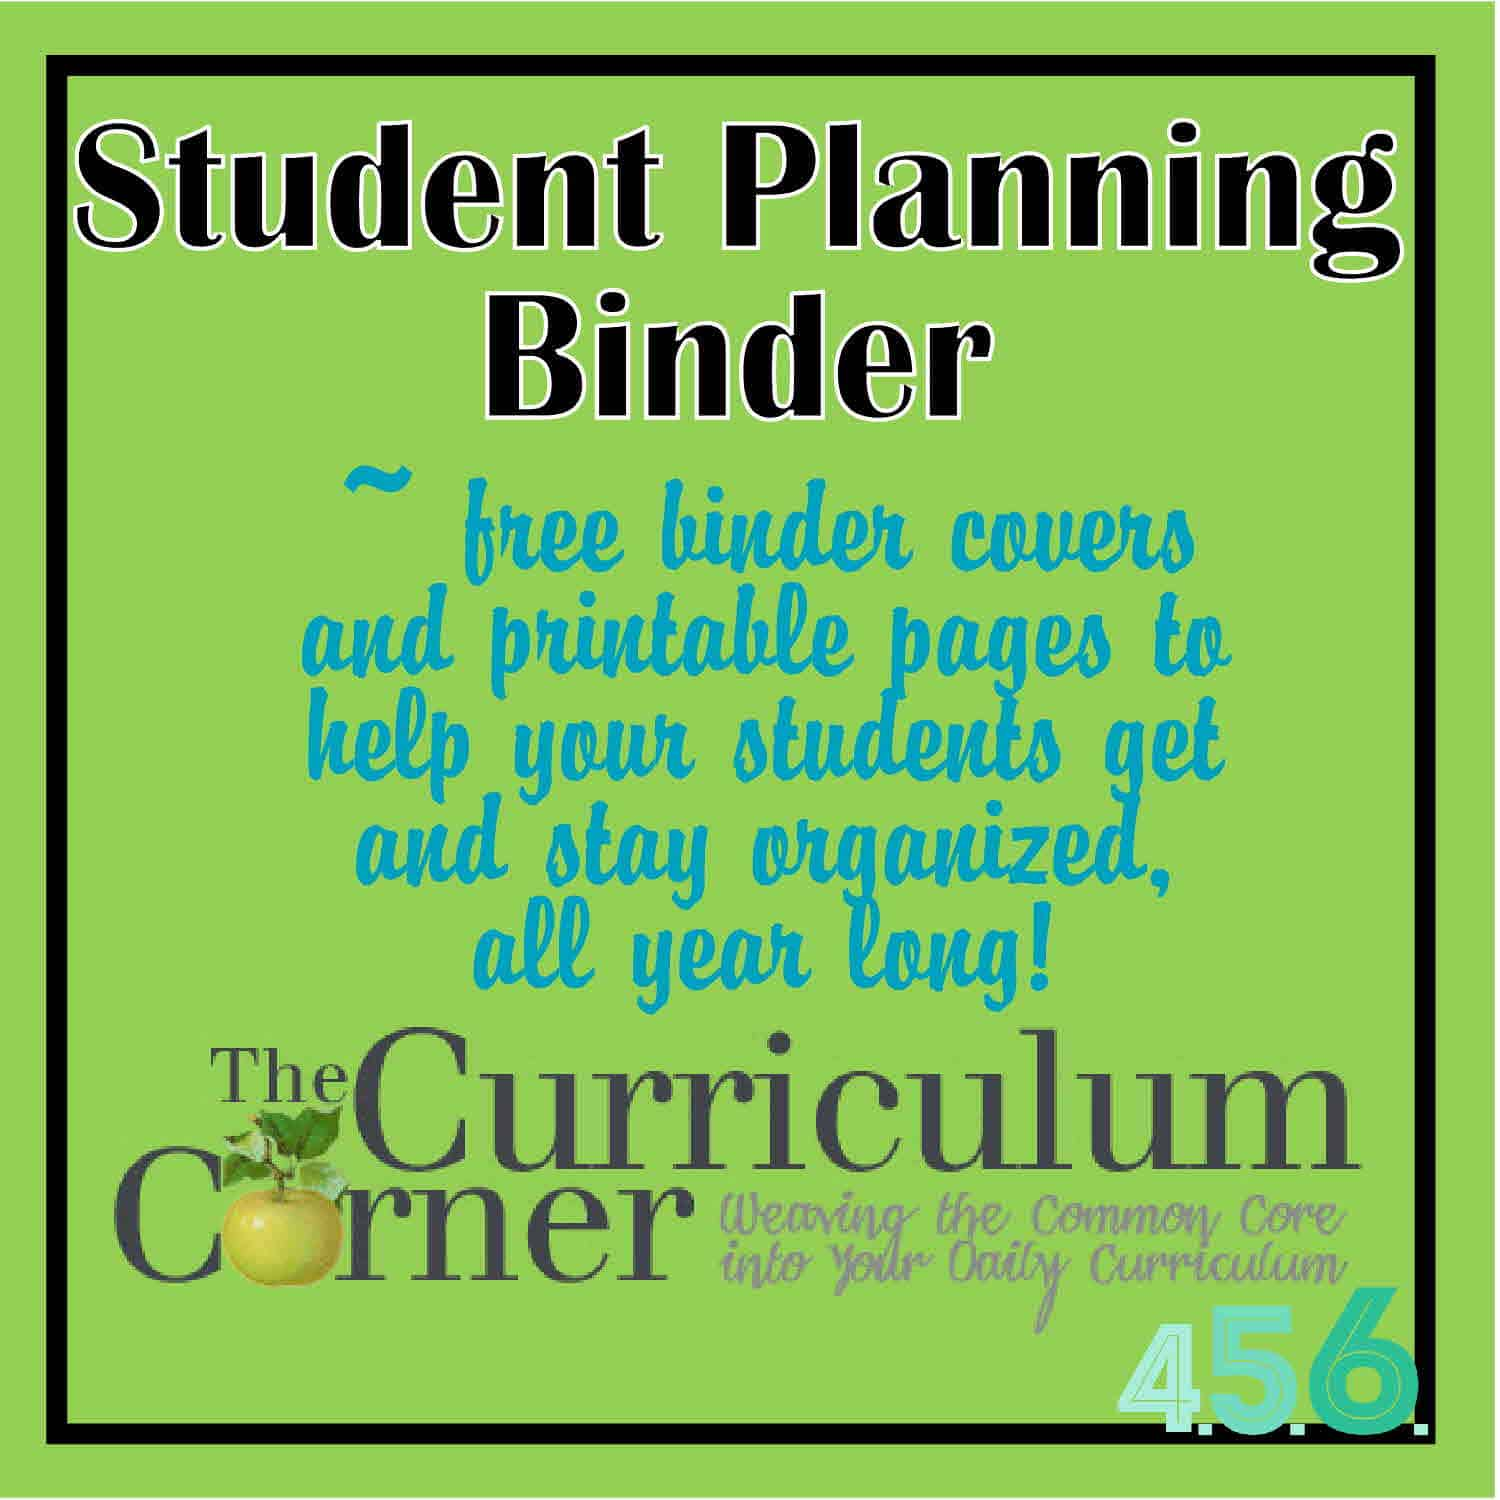 Free student planning binder from The Curriculum Corner 456